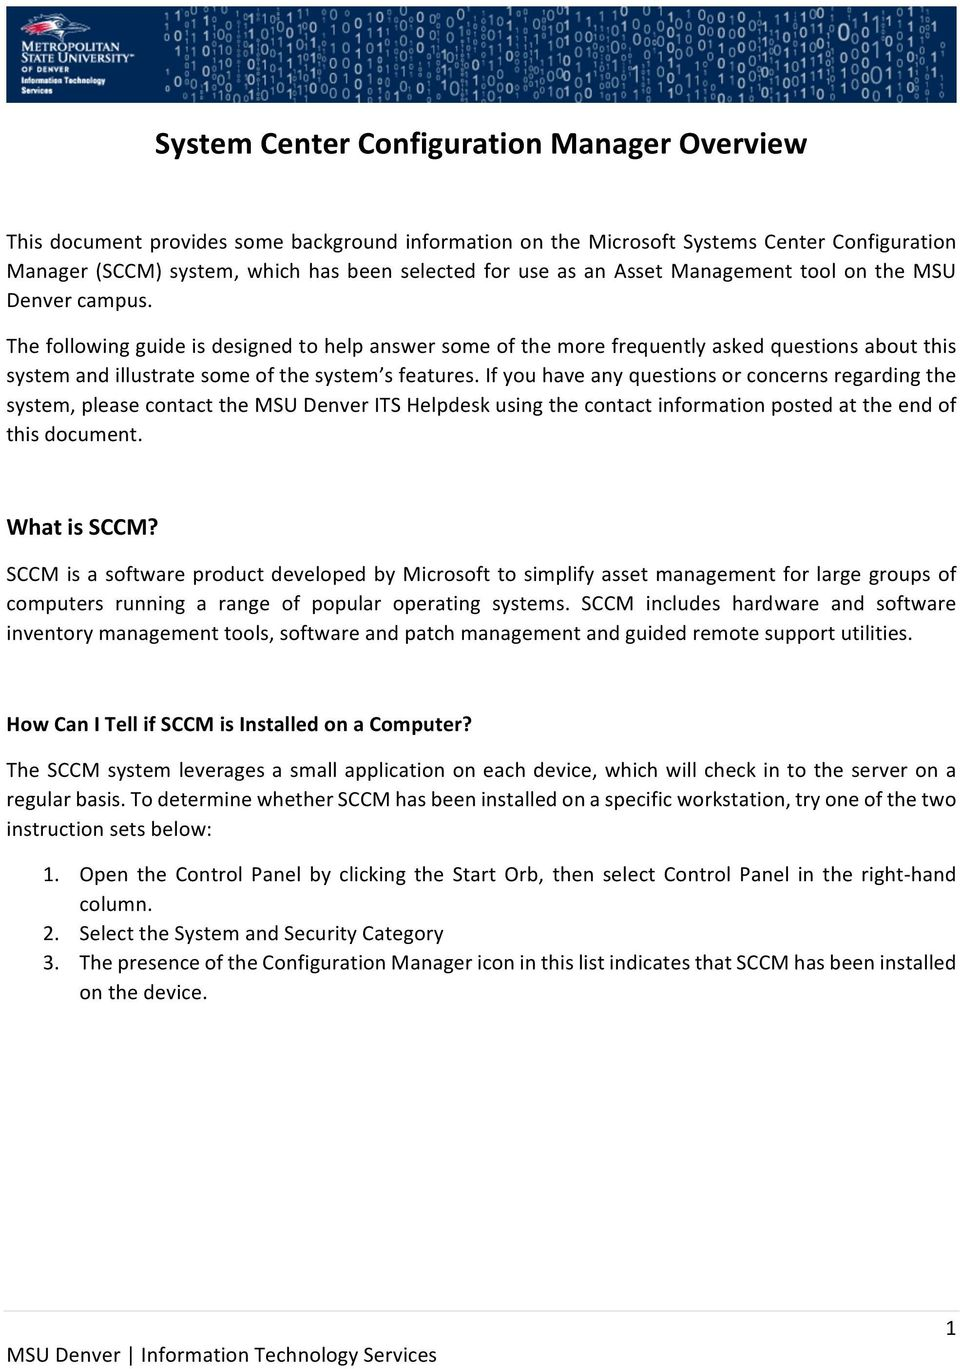 System Center Configuration Manager Overview - PDF